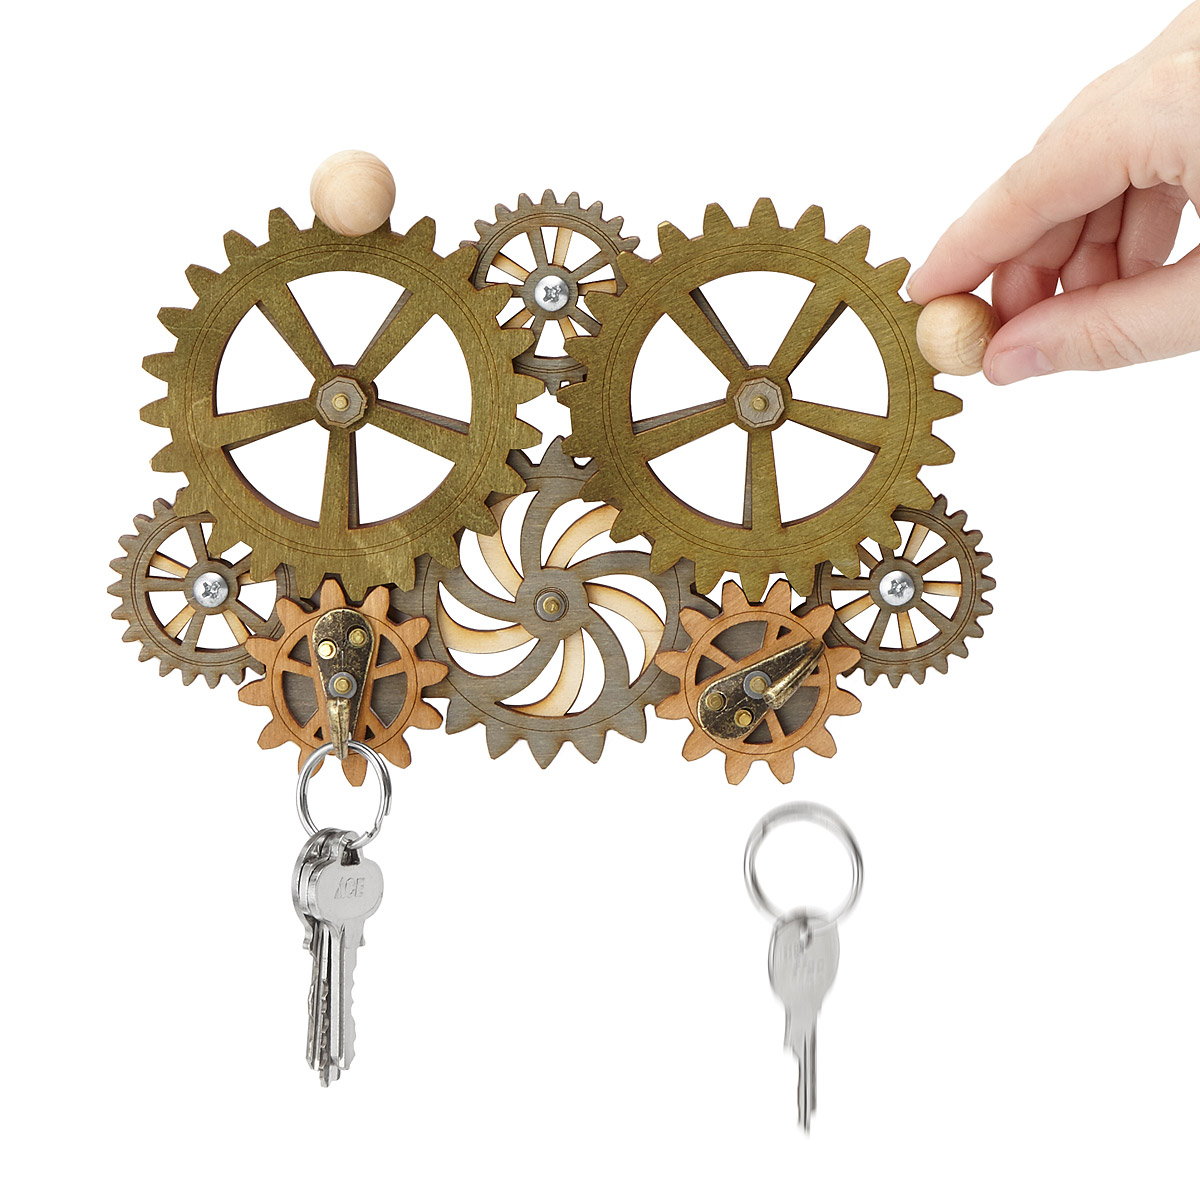 Kinetic Gear Key Holder item 26826_zoom1